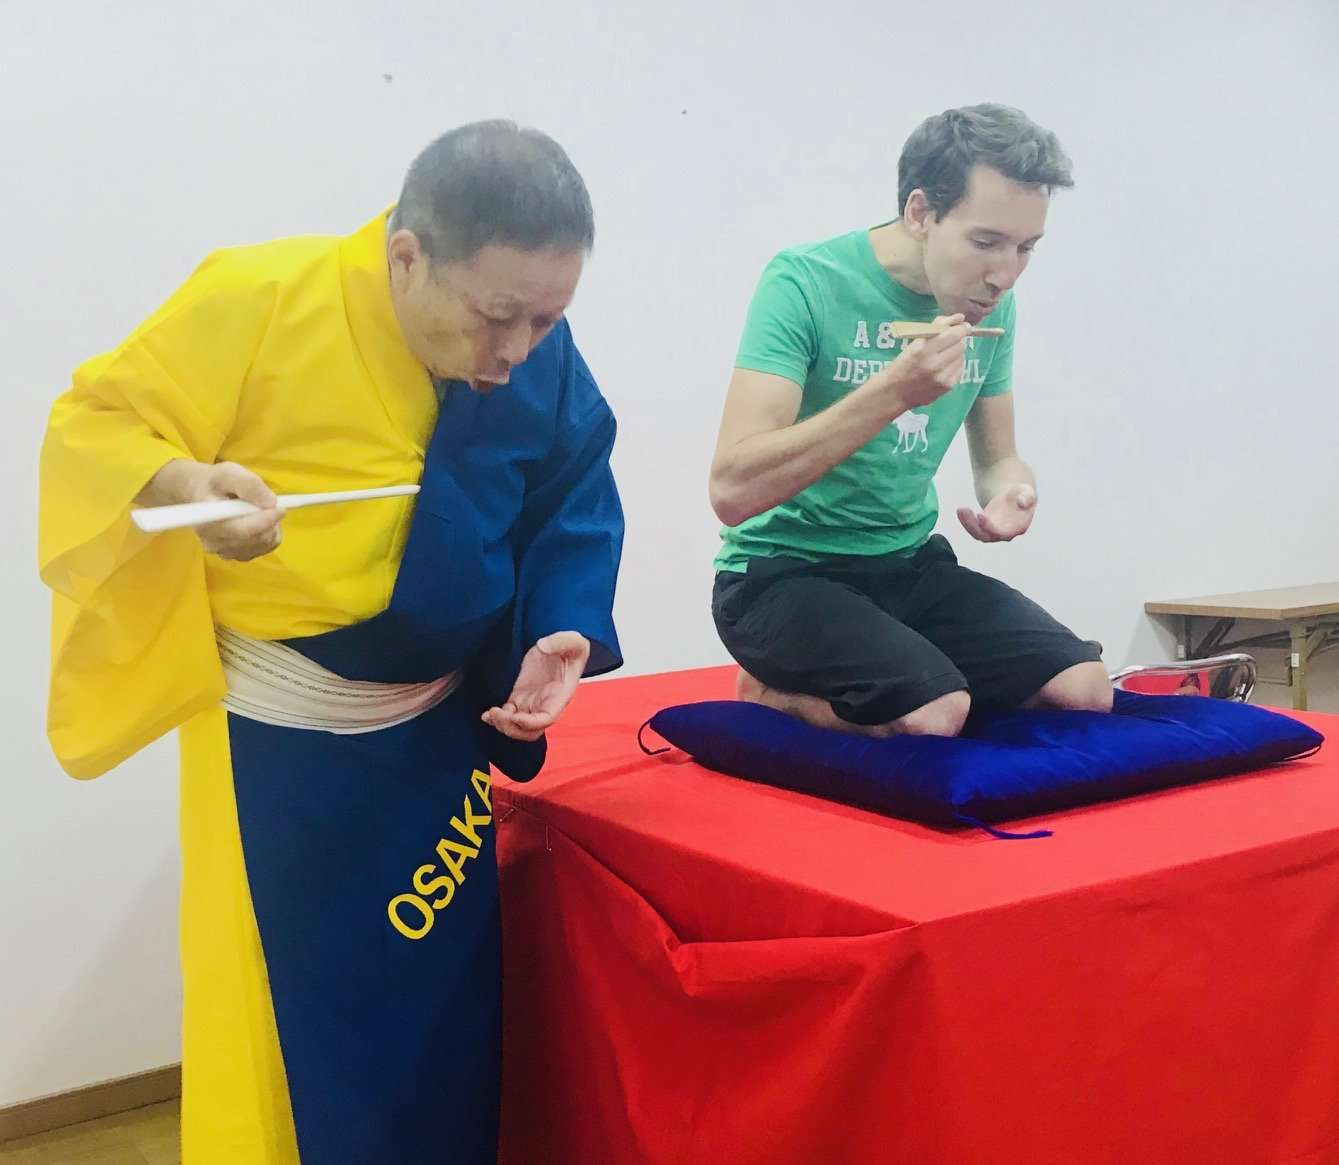 Showto teaches a workshop on Rakugo and how to eat noodles pantomiming with only a fan.